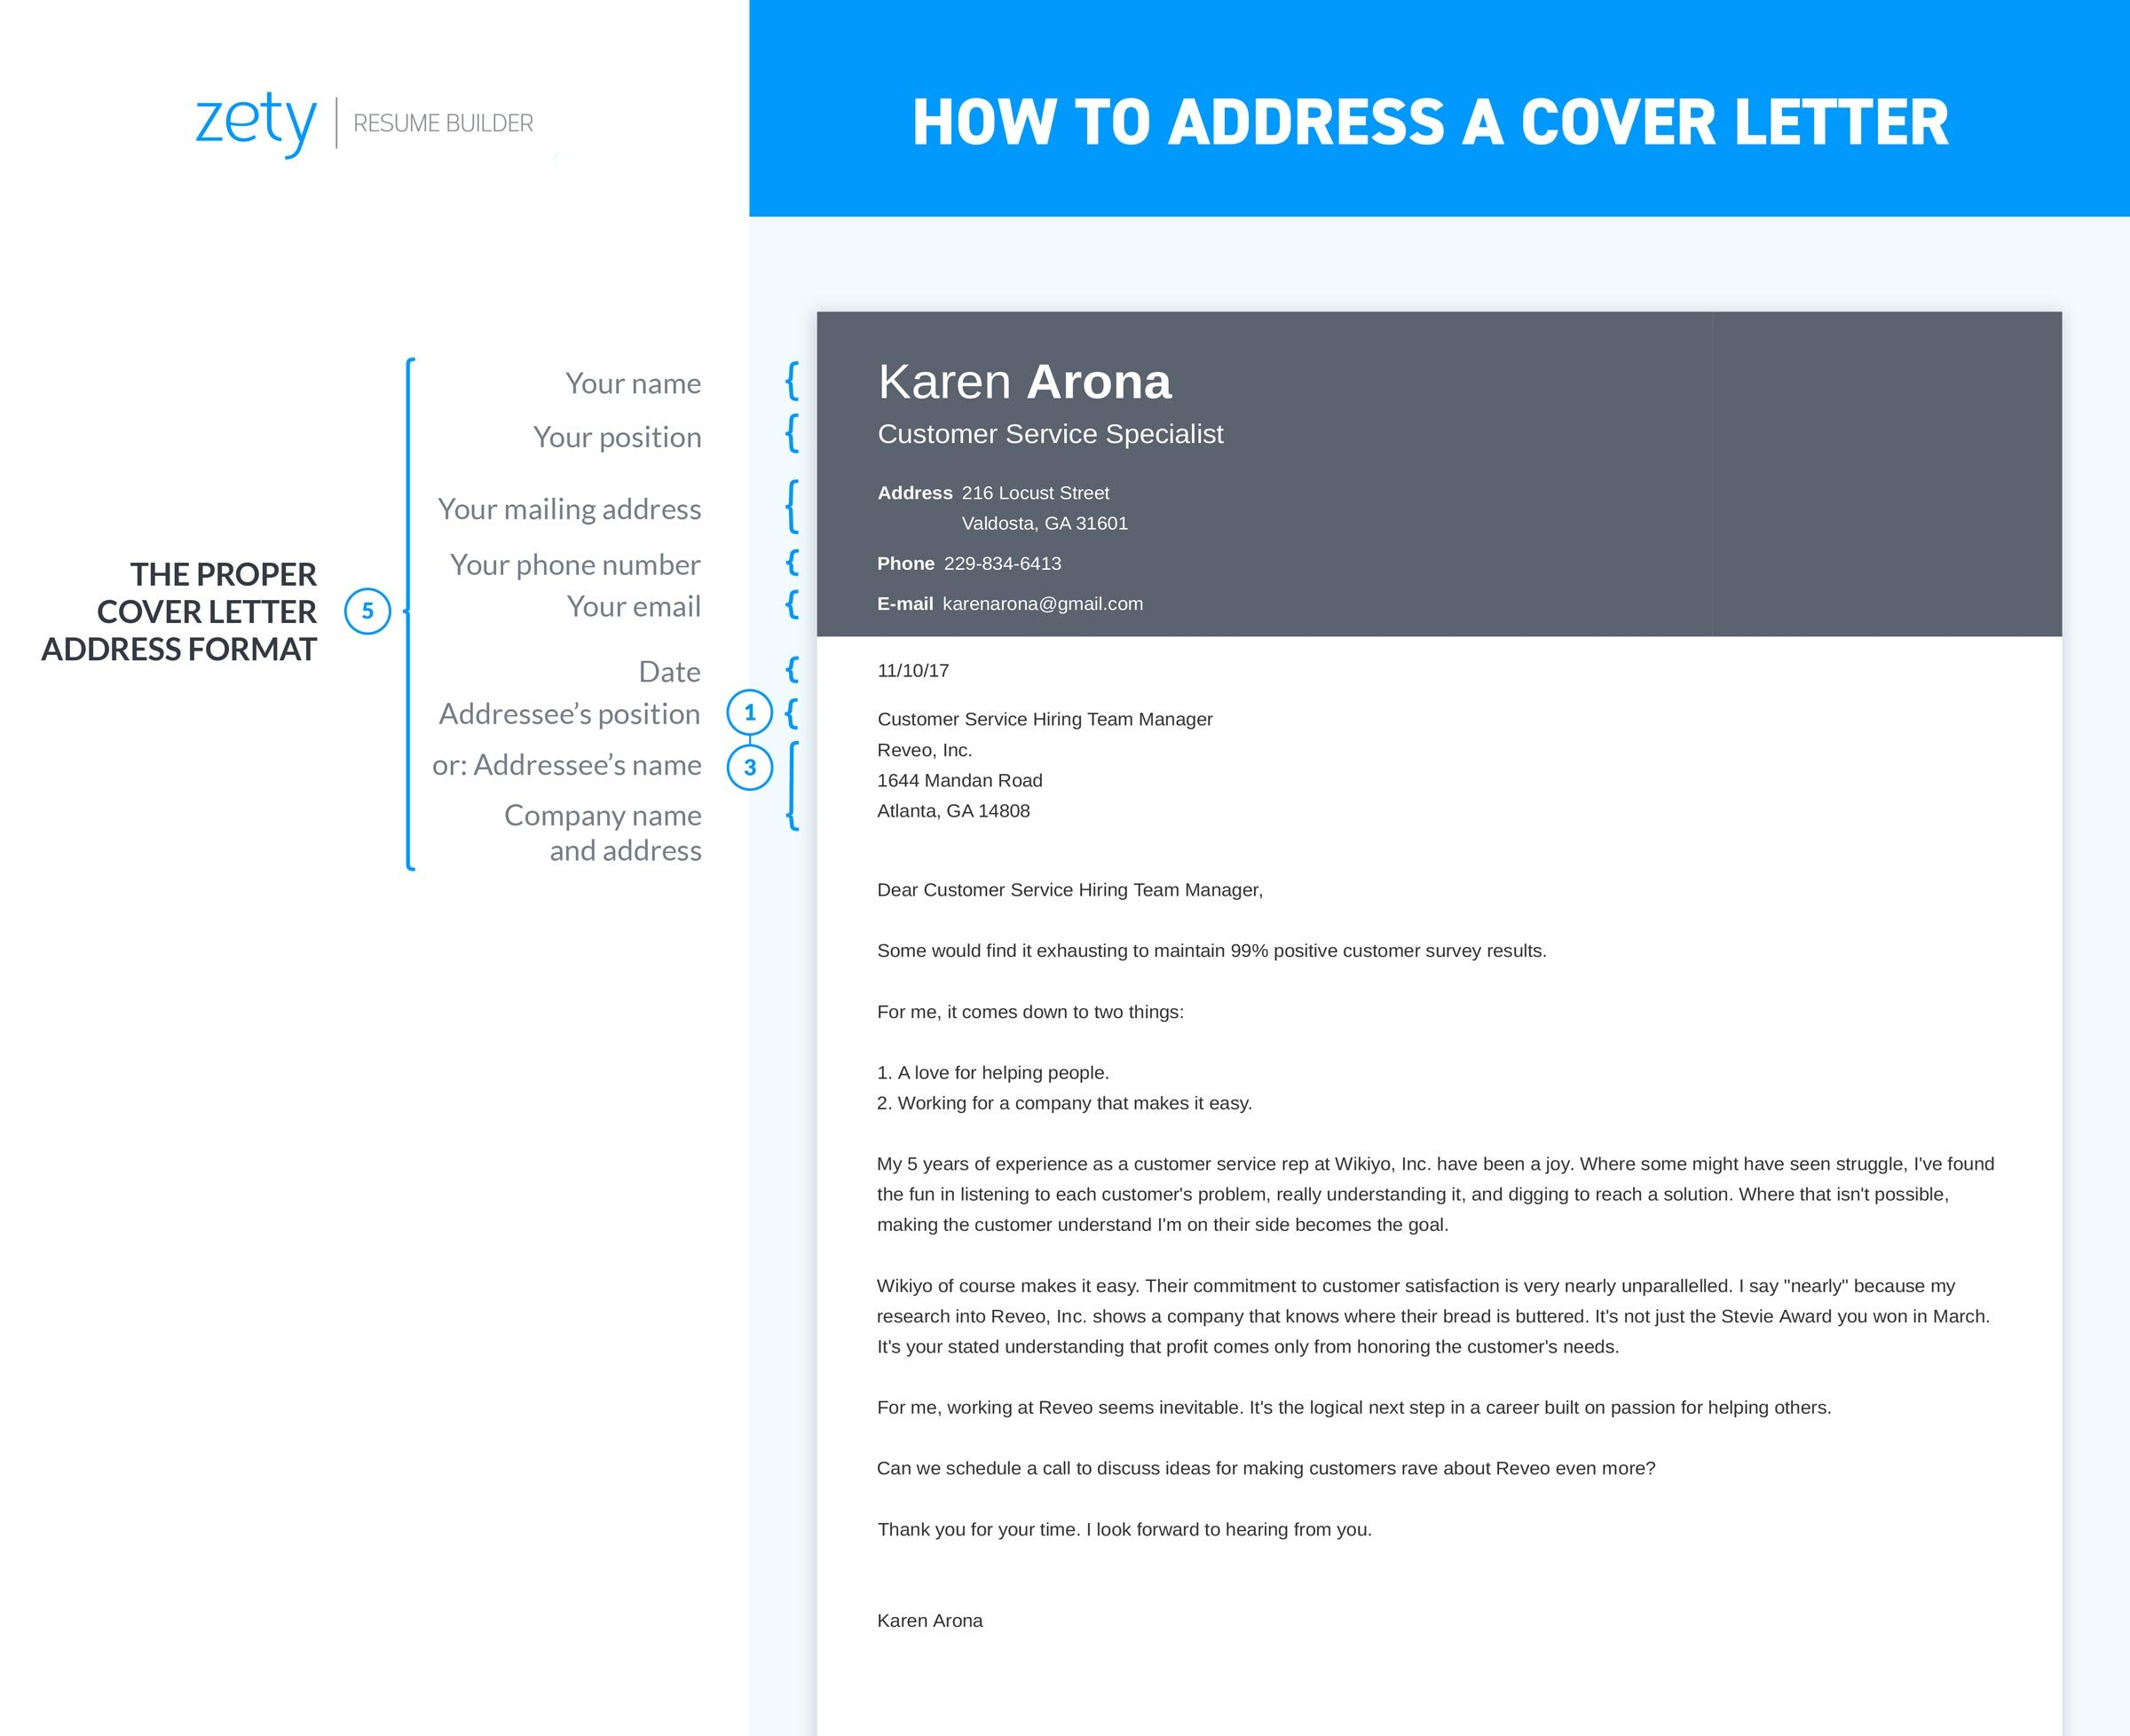 How to address a cover letter sample guide 20 examples for How to address a cover letter without an address